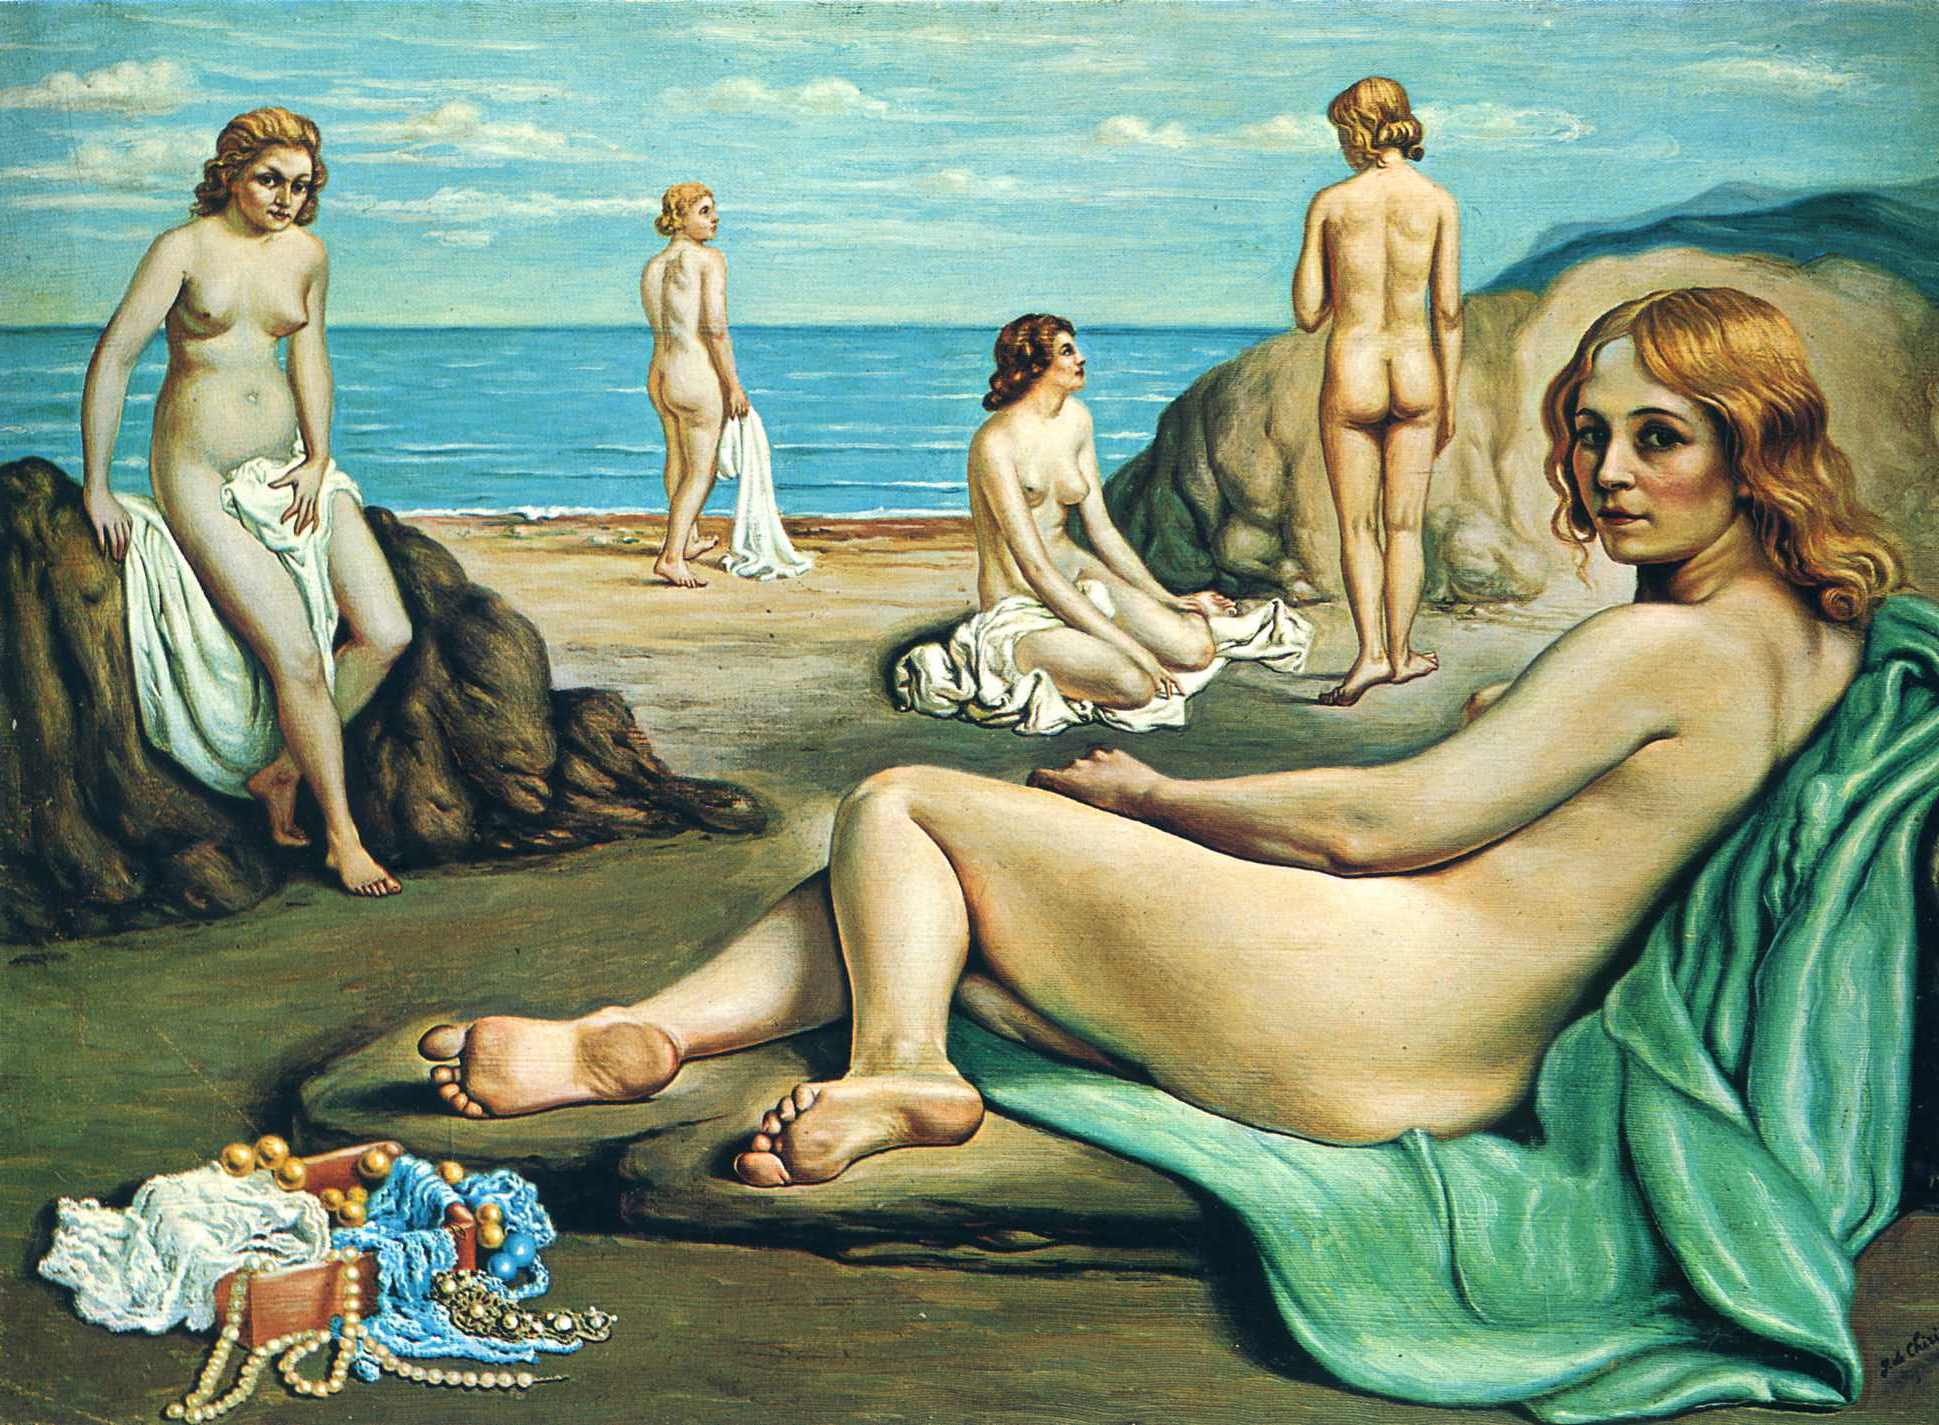 http://uploads5.wikipaintings.org/images/giorgio-de-chirico/bathers-on-the-beach-1934.jpg